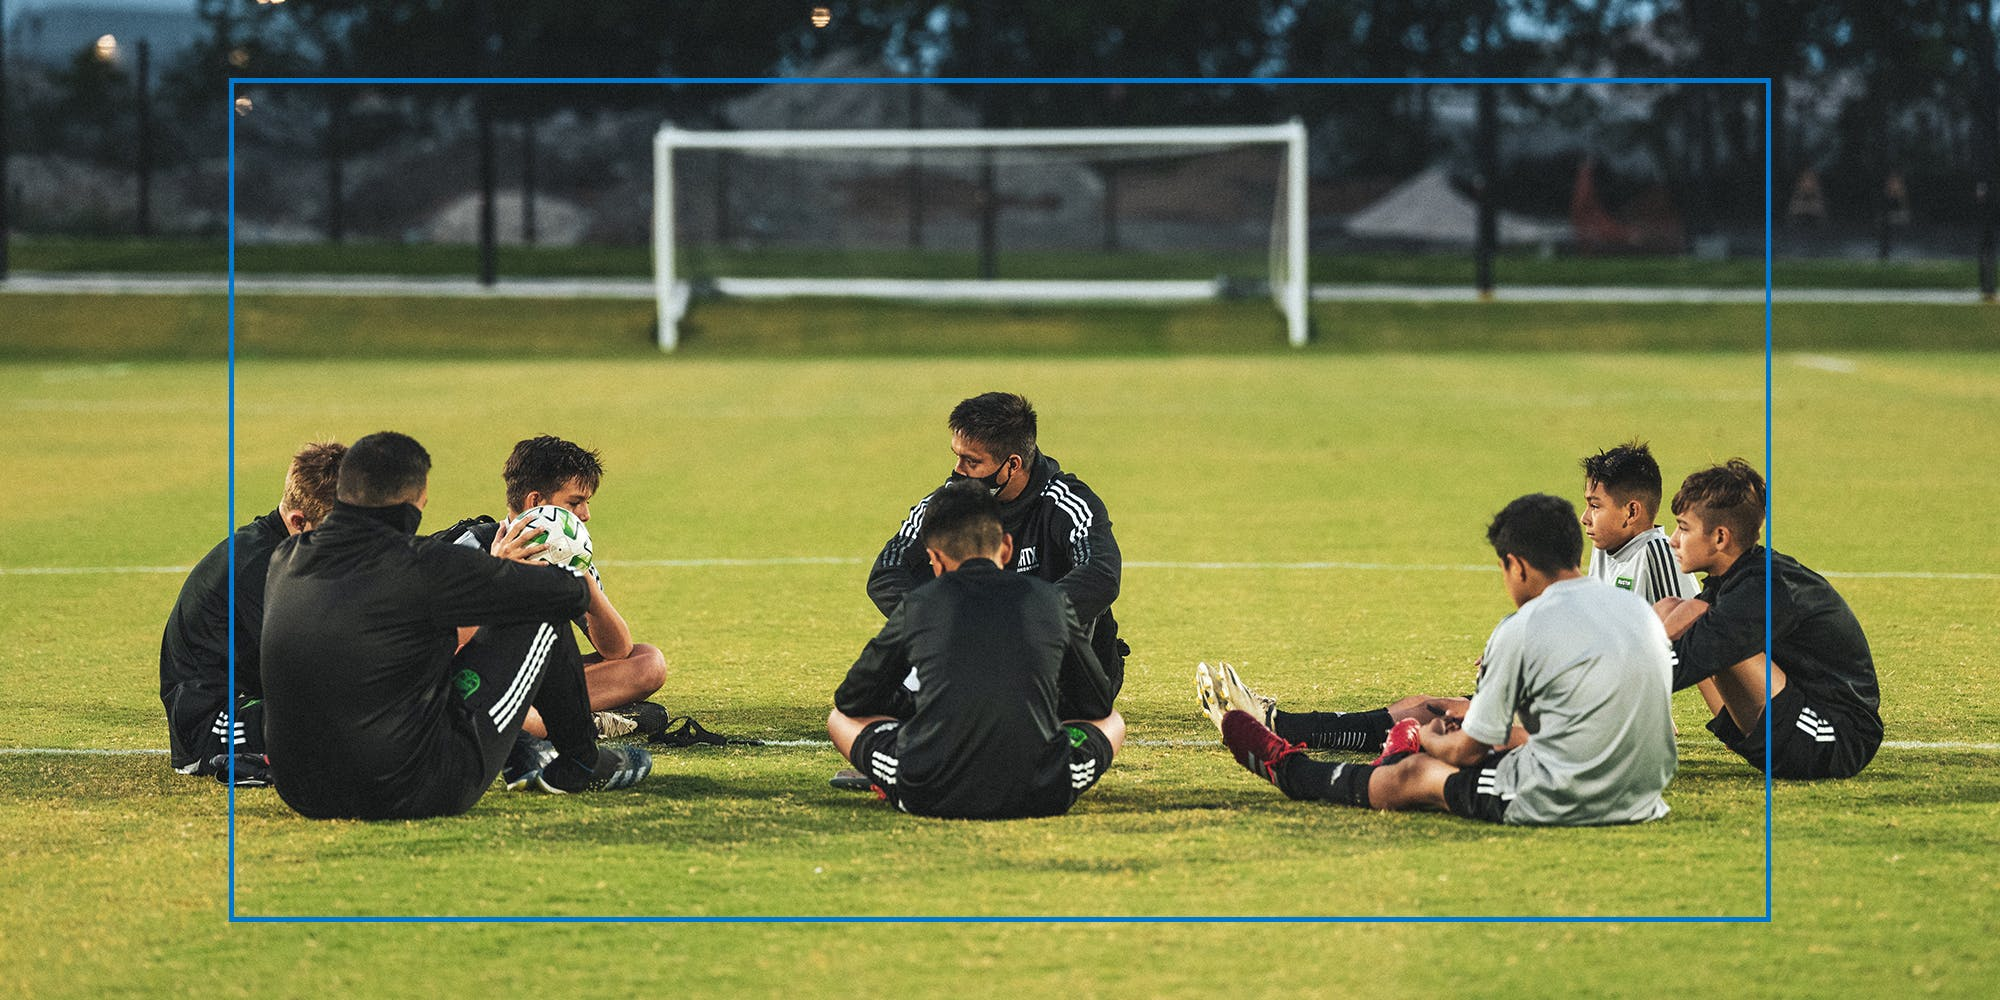 Soccer team sitting in circle on field